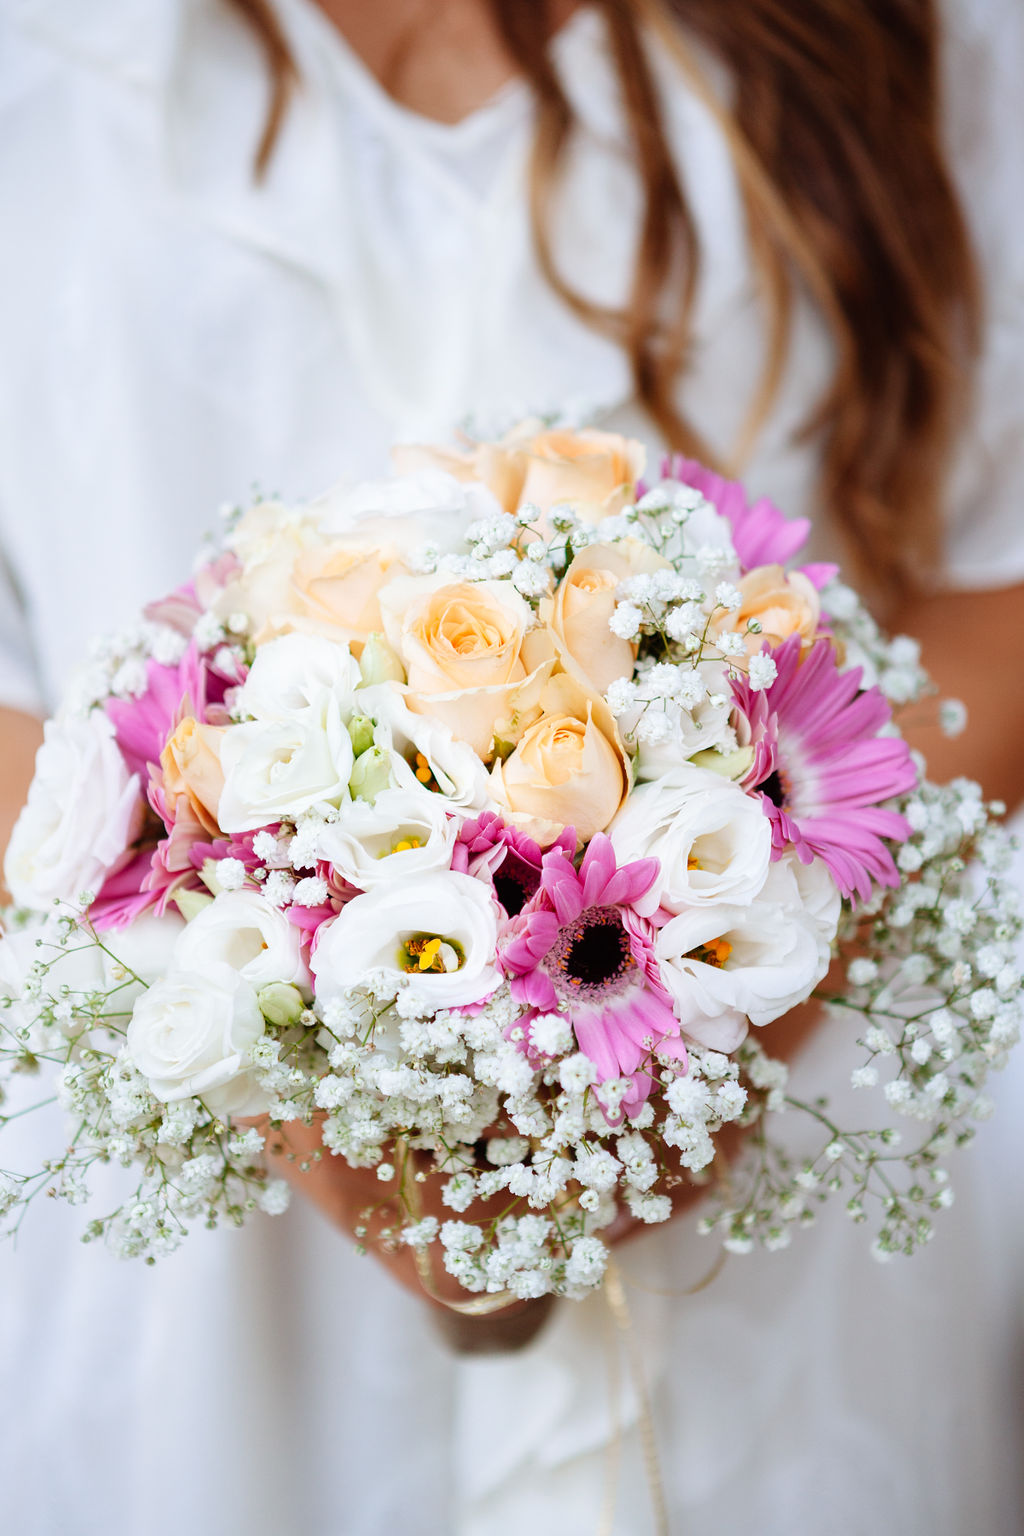 intimate wedding in Tuscany - Elizabeth Armitage Photography - pink peach and white bridal bouquet